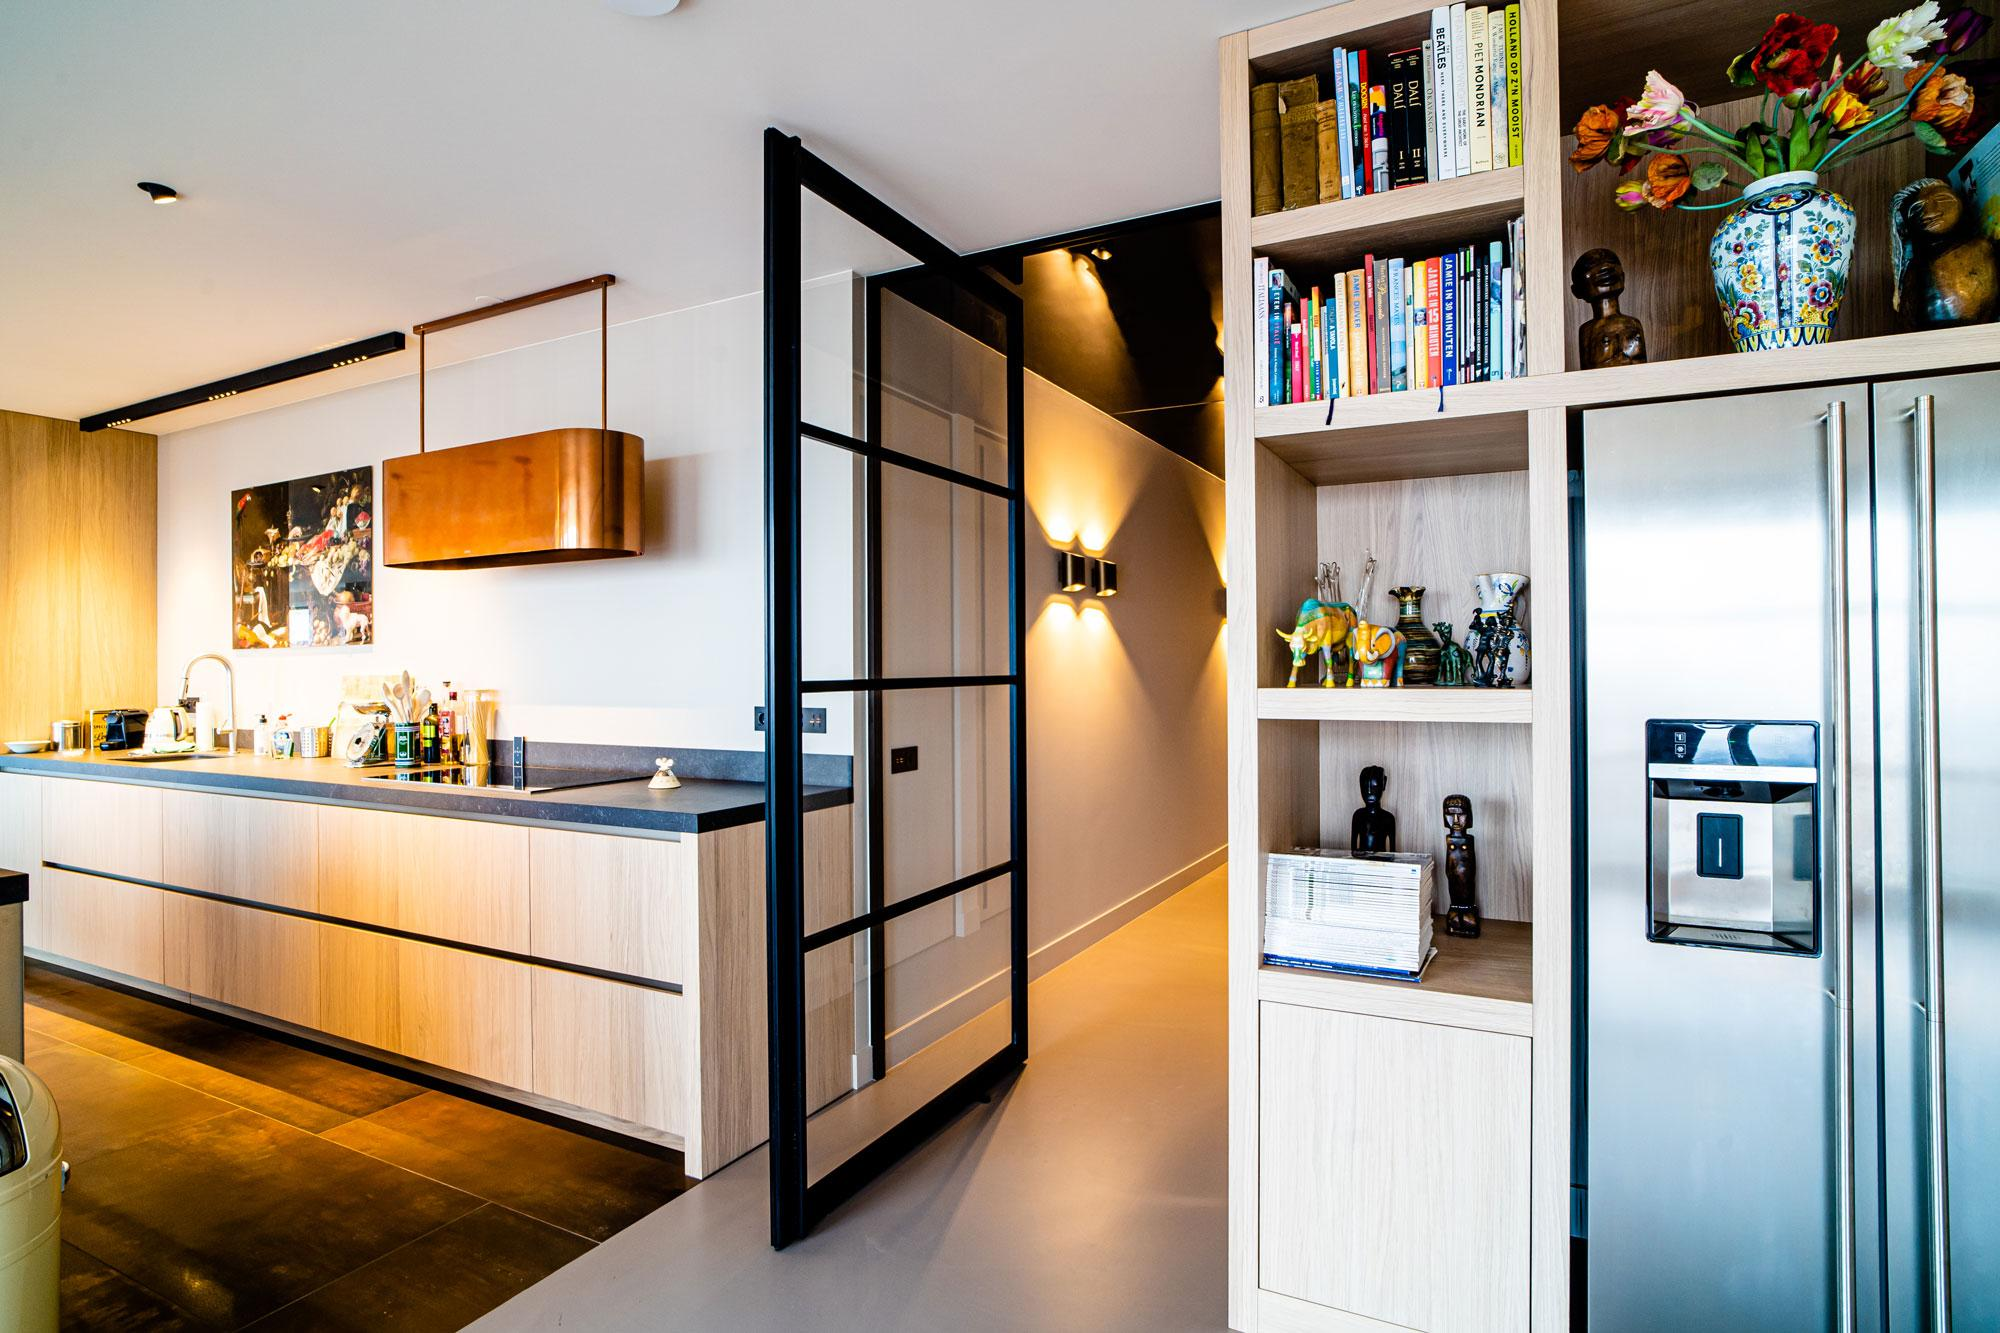 Modern appartement met steel look en houtlook taatsdeuren